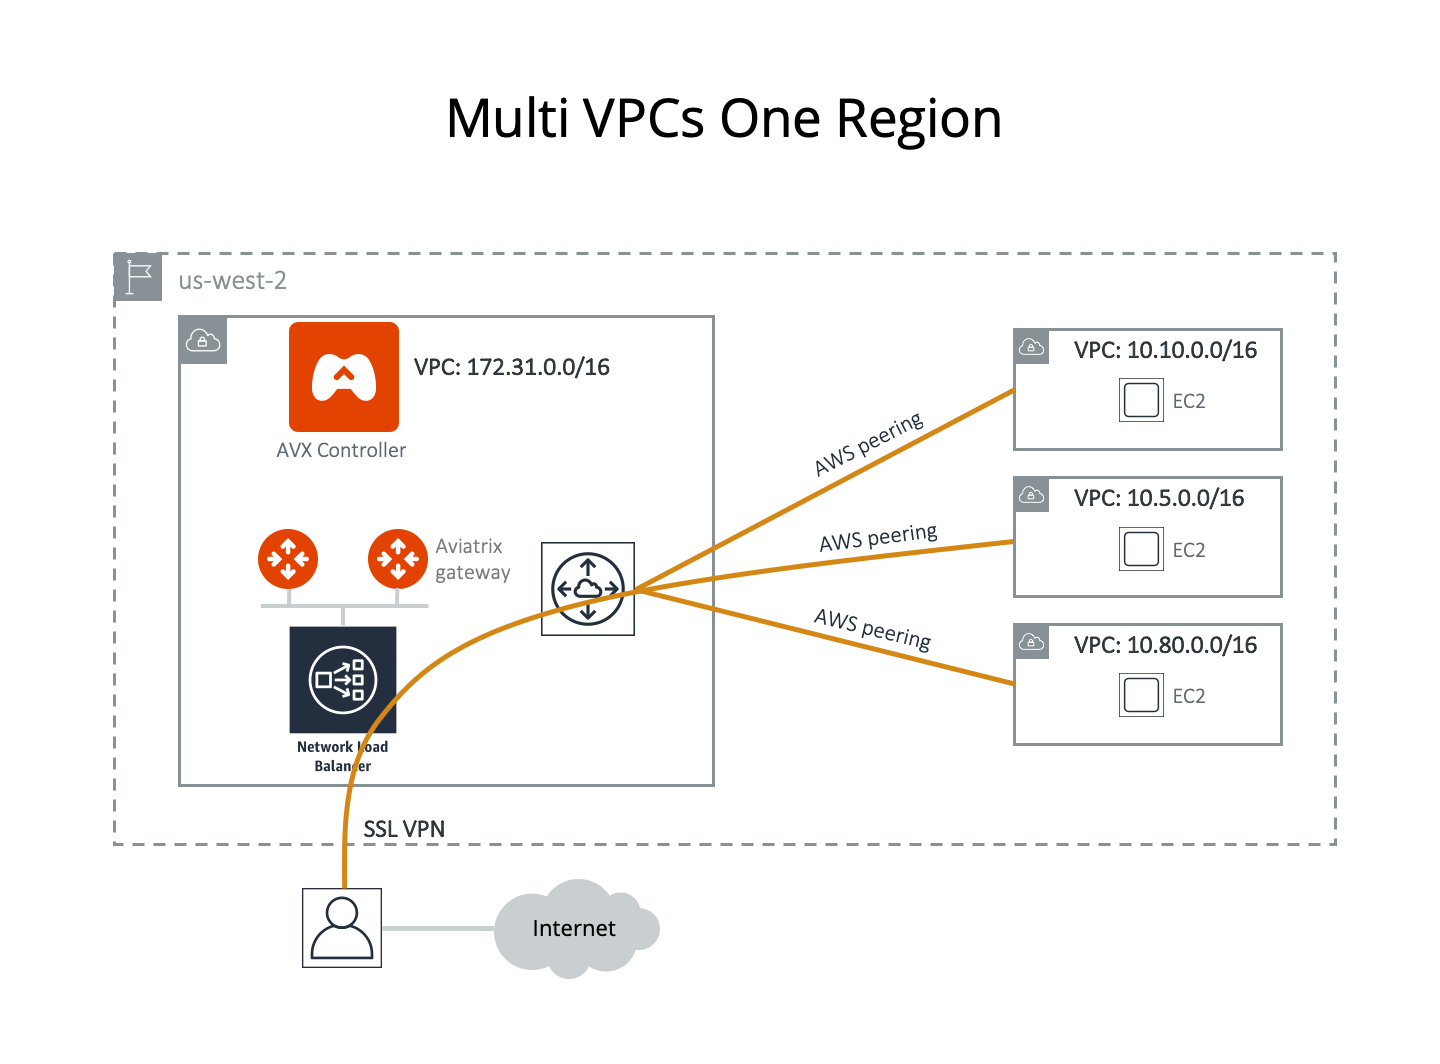 hight resolution of assume you have created 4 vpcs in the same region us west 2 in this case you like to use the vpc with cidr 172 31 0 0 16 to host gateways where users